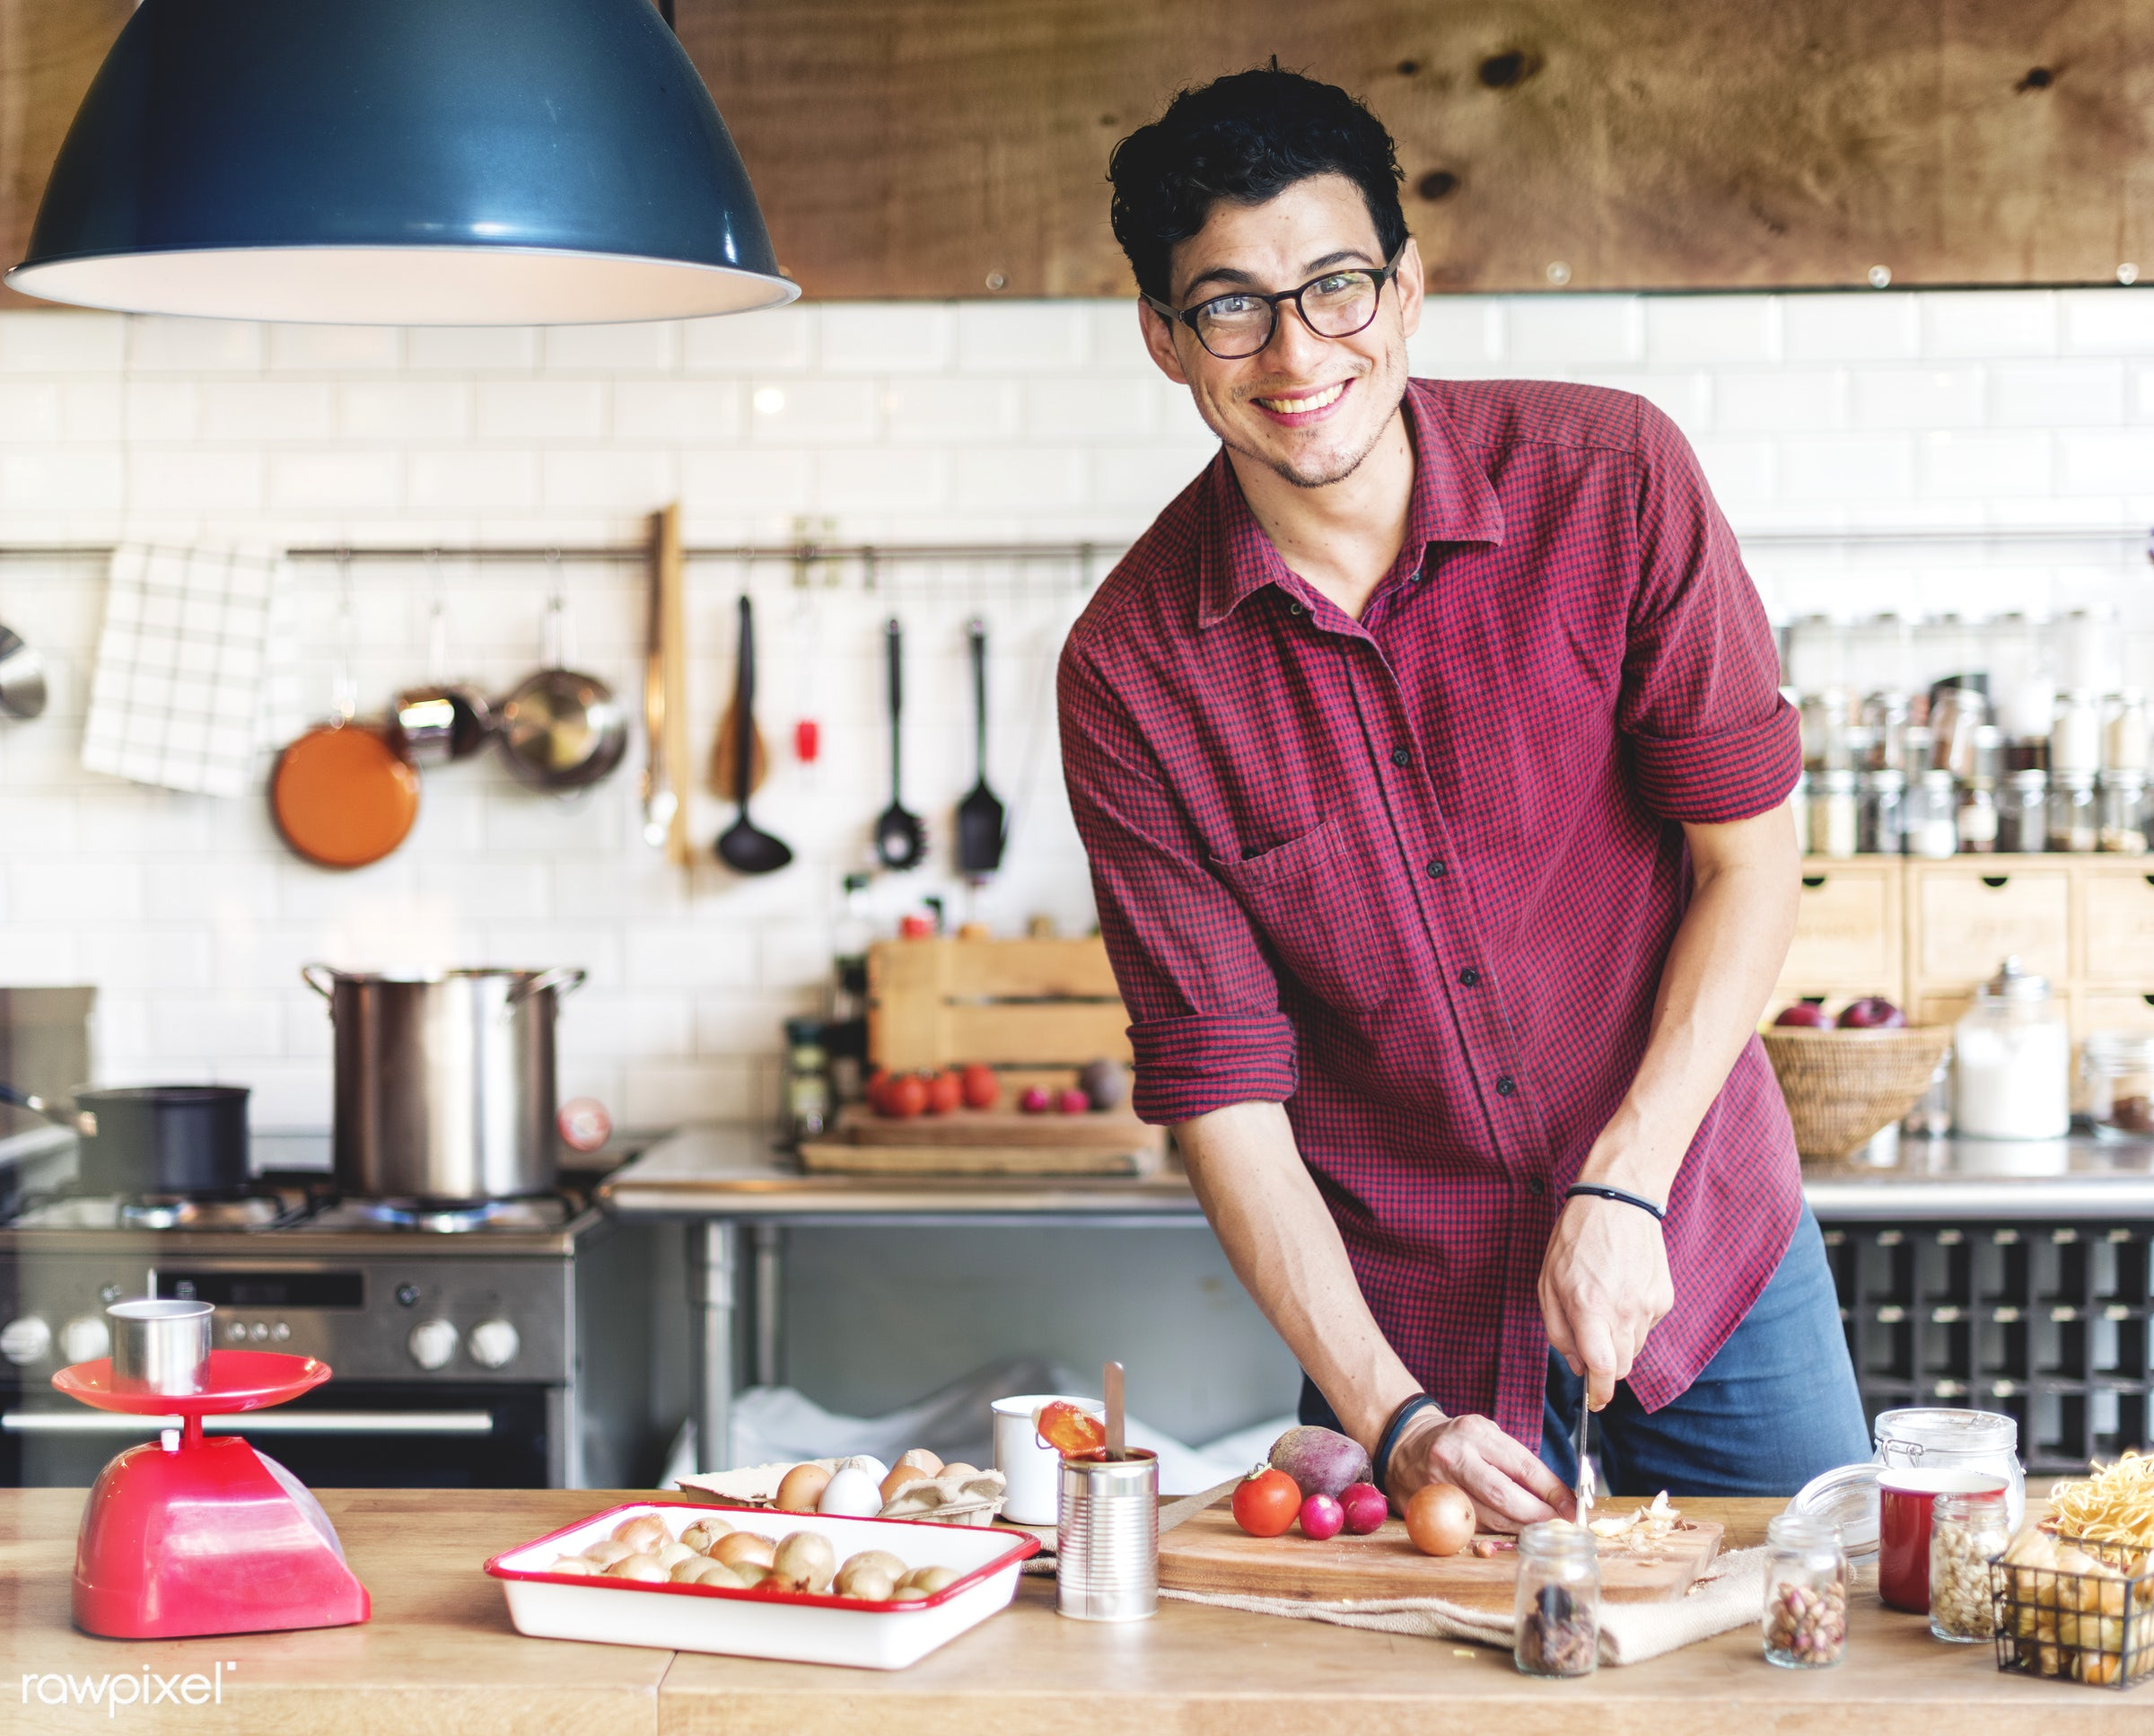 handsome, activity, casual, cheerful, chef, chop, cook, cookery, cookhouse, cooking, cookware, cuisine, culinary, dietary,...